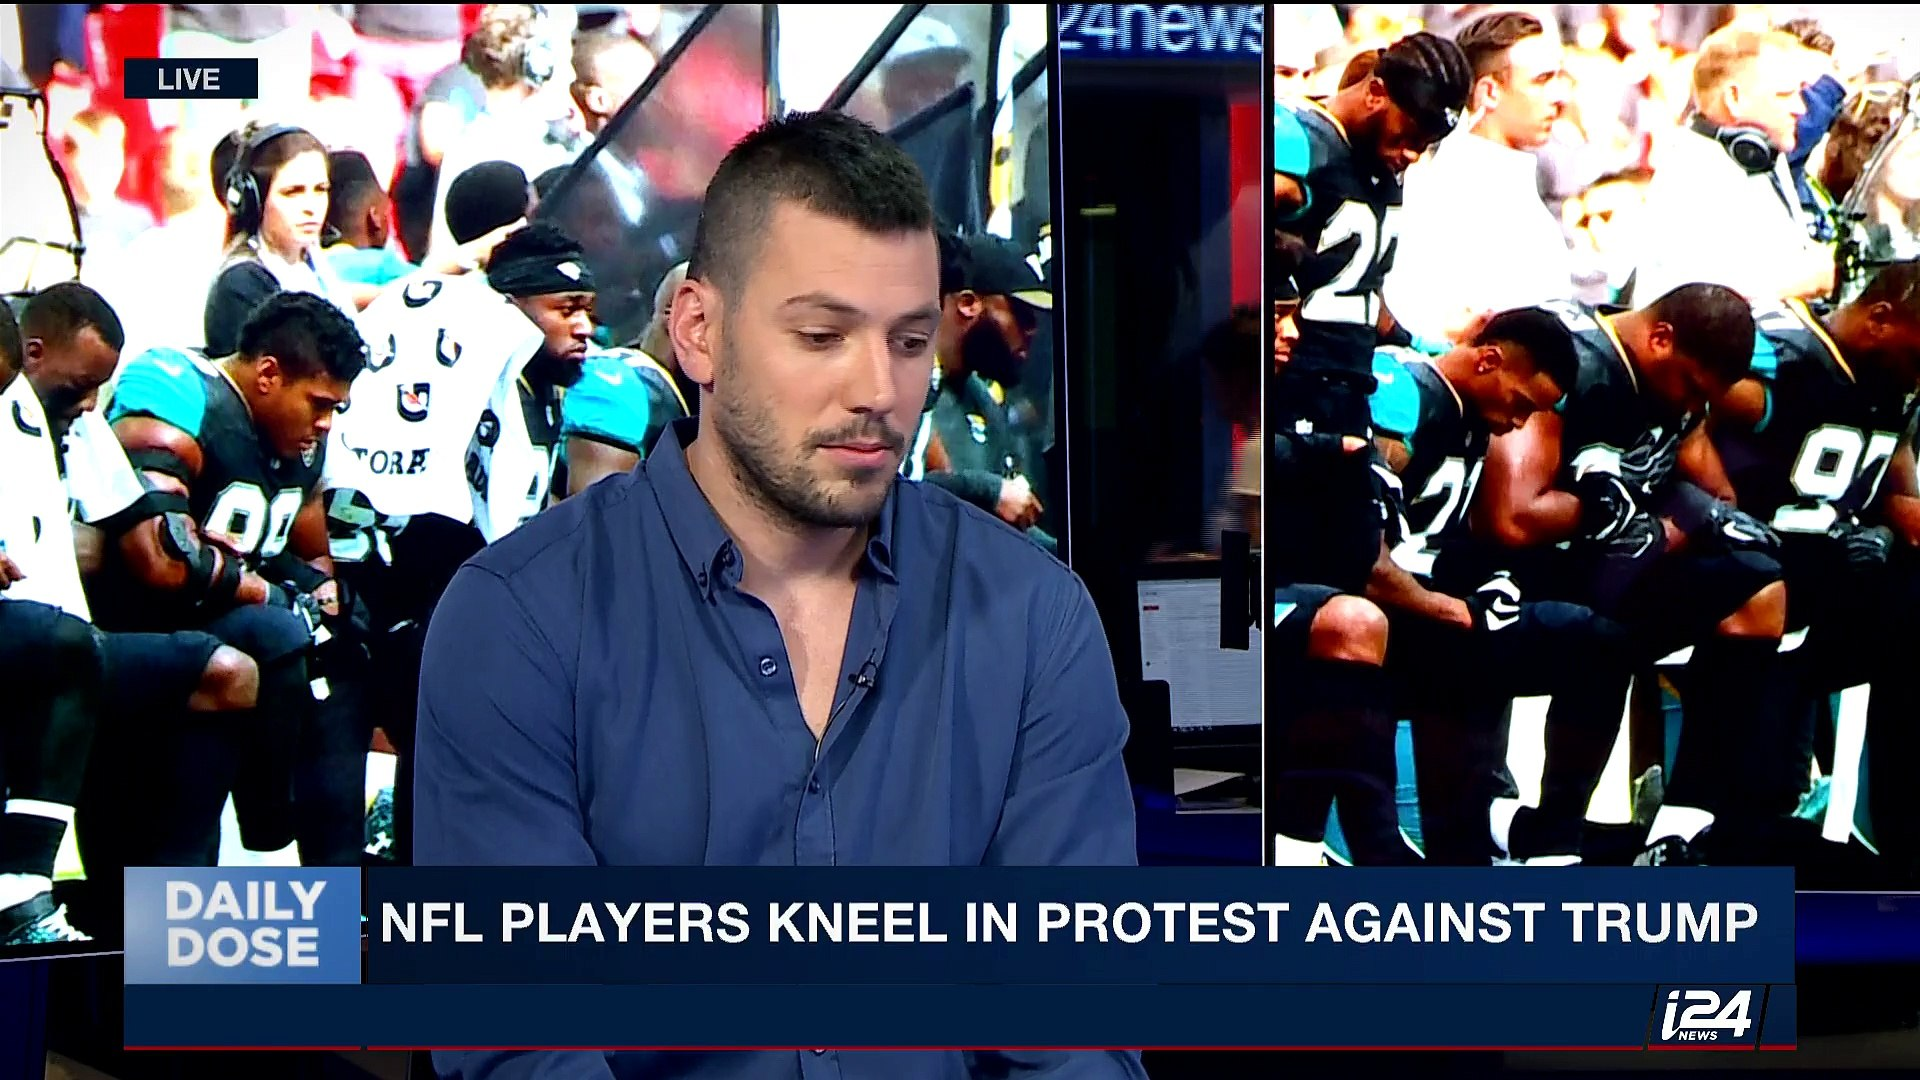 DAILY DOSE |  NFL players kneel during anthem to defy Trump | Monday, September 25th 2017